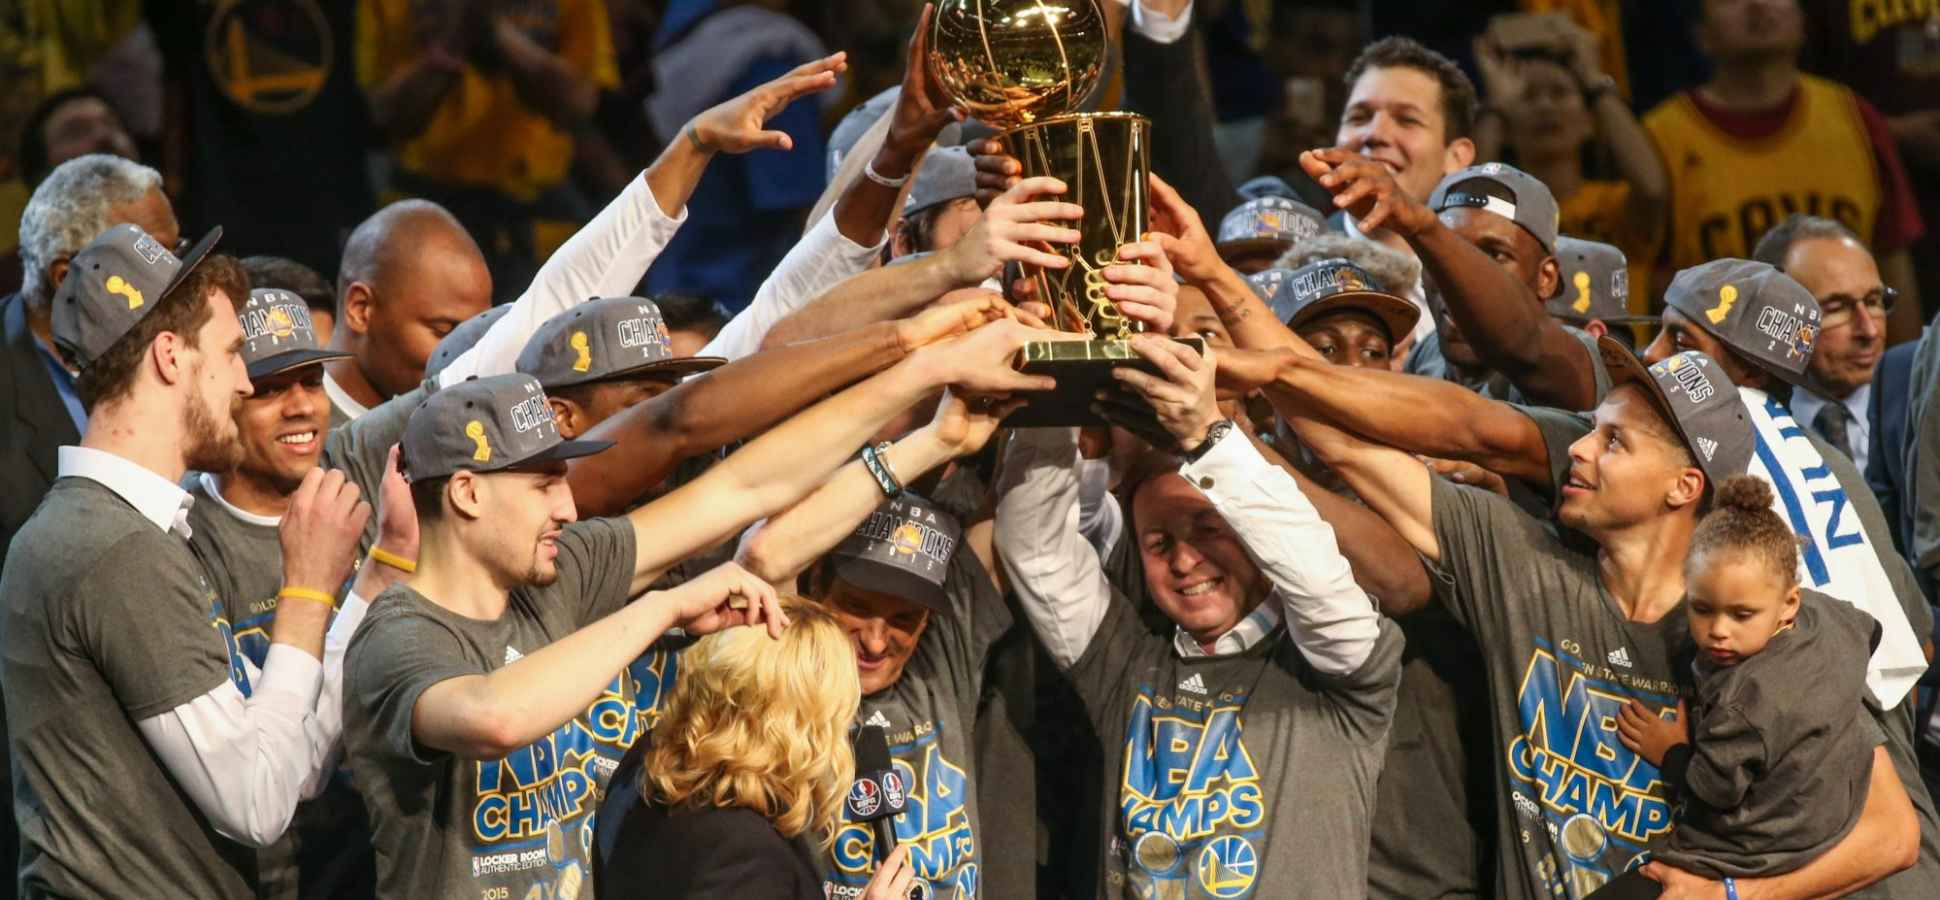 With 1 Simple Statement, the Golden State Warriors Showed Donald Trump the True Meaning of Modern Leadership